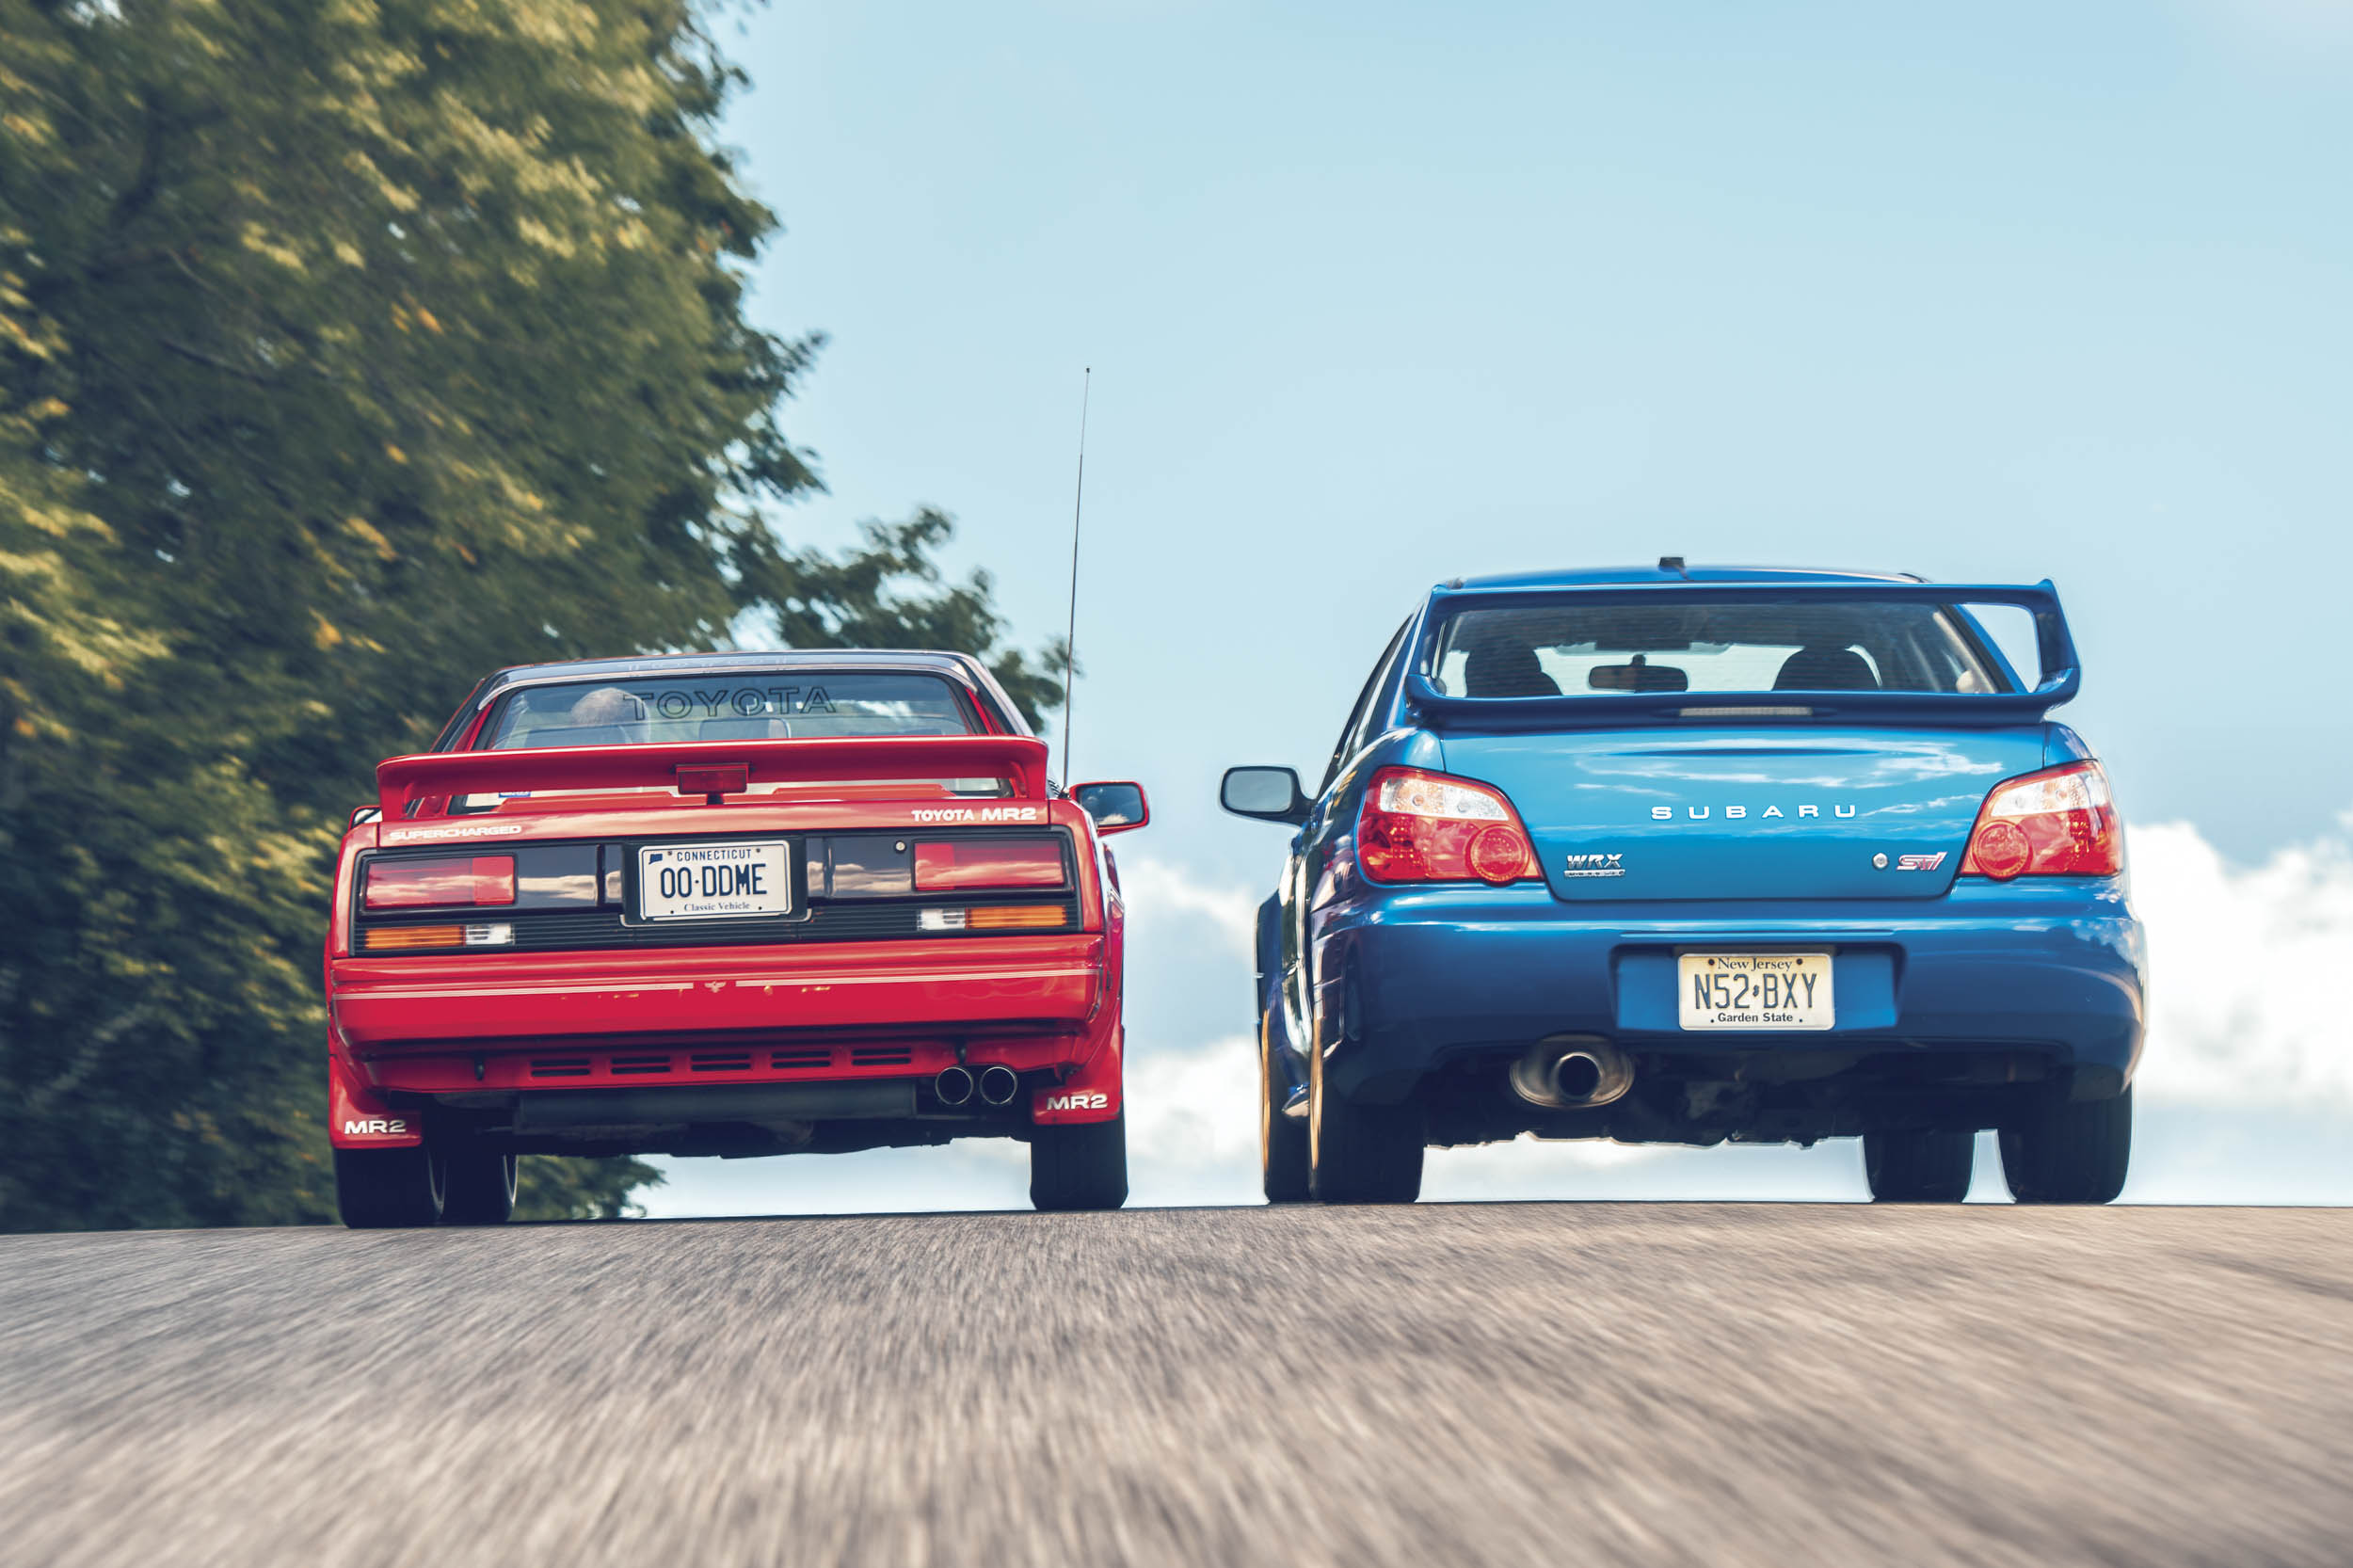 Two decades of design evolution and light-years of technological and philosophical differences separate the original MR2 from the STI.